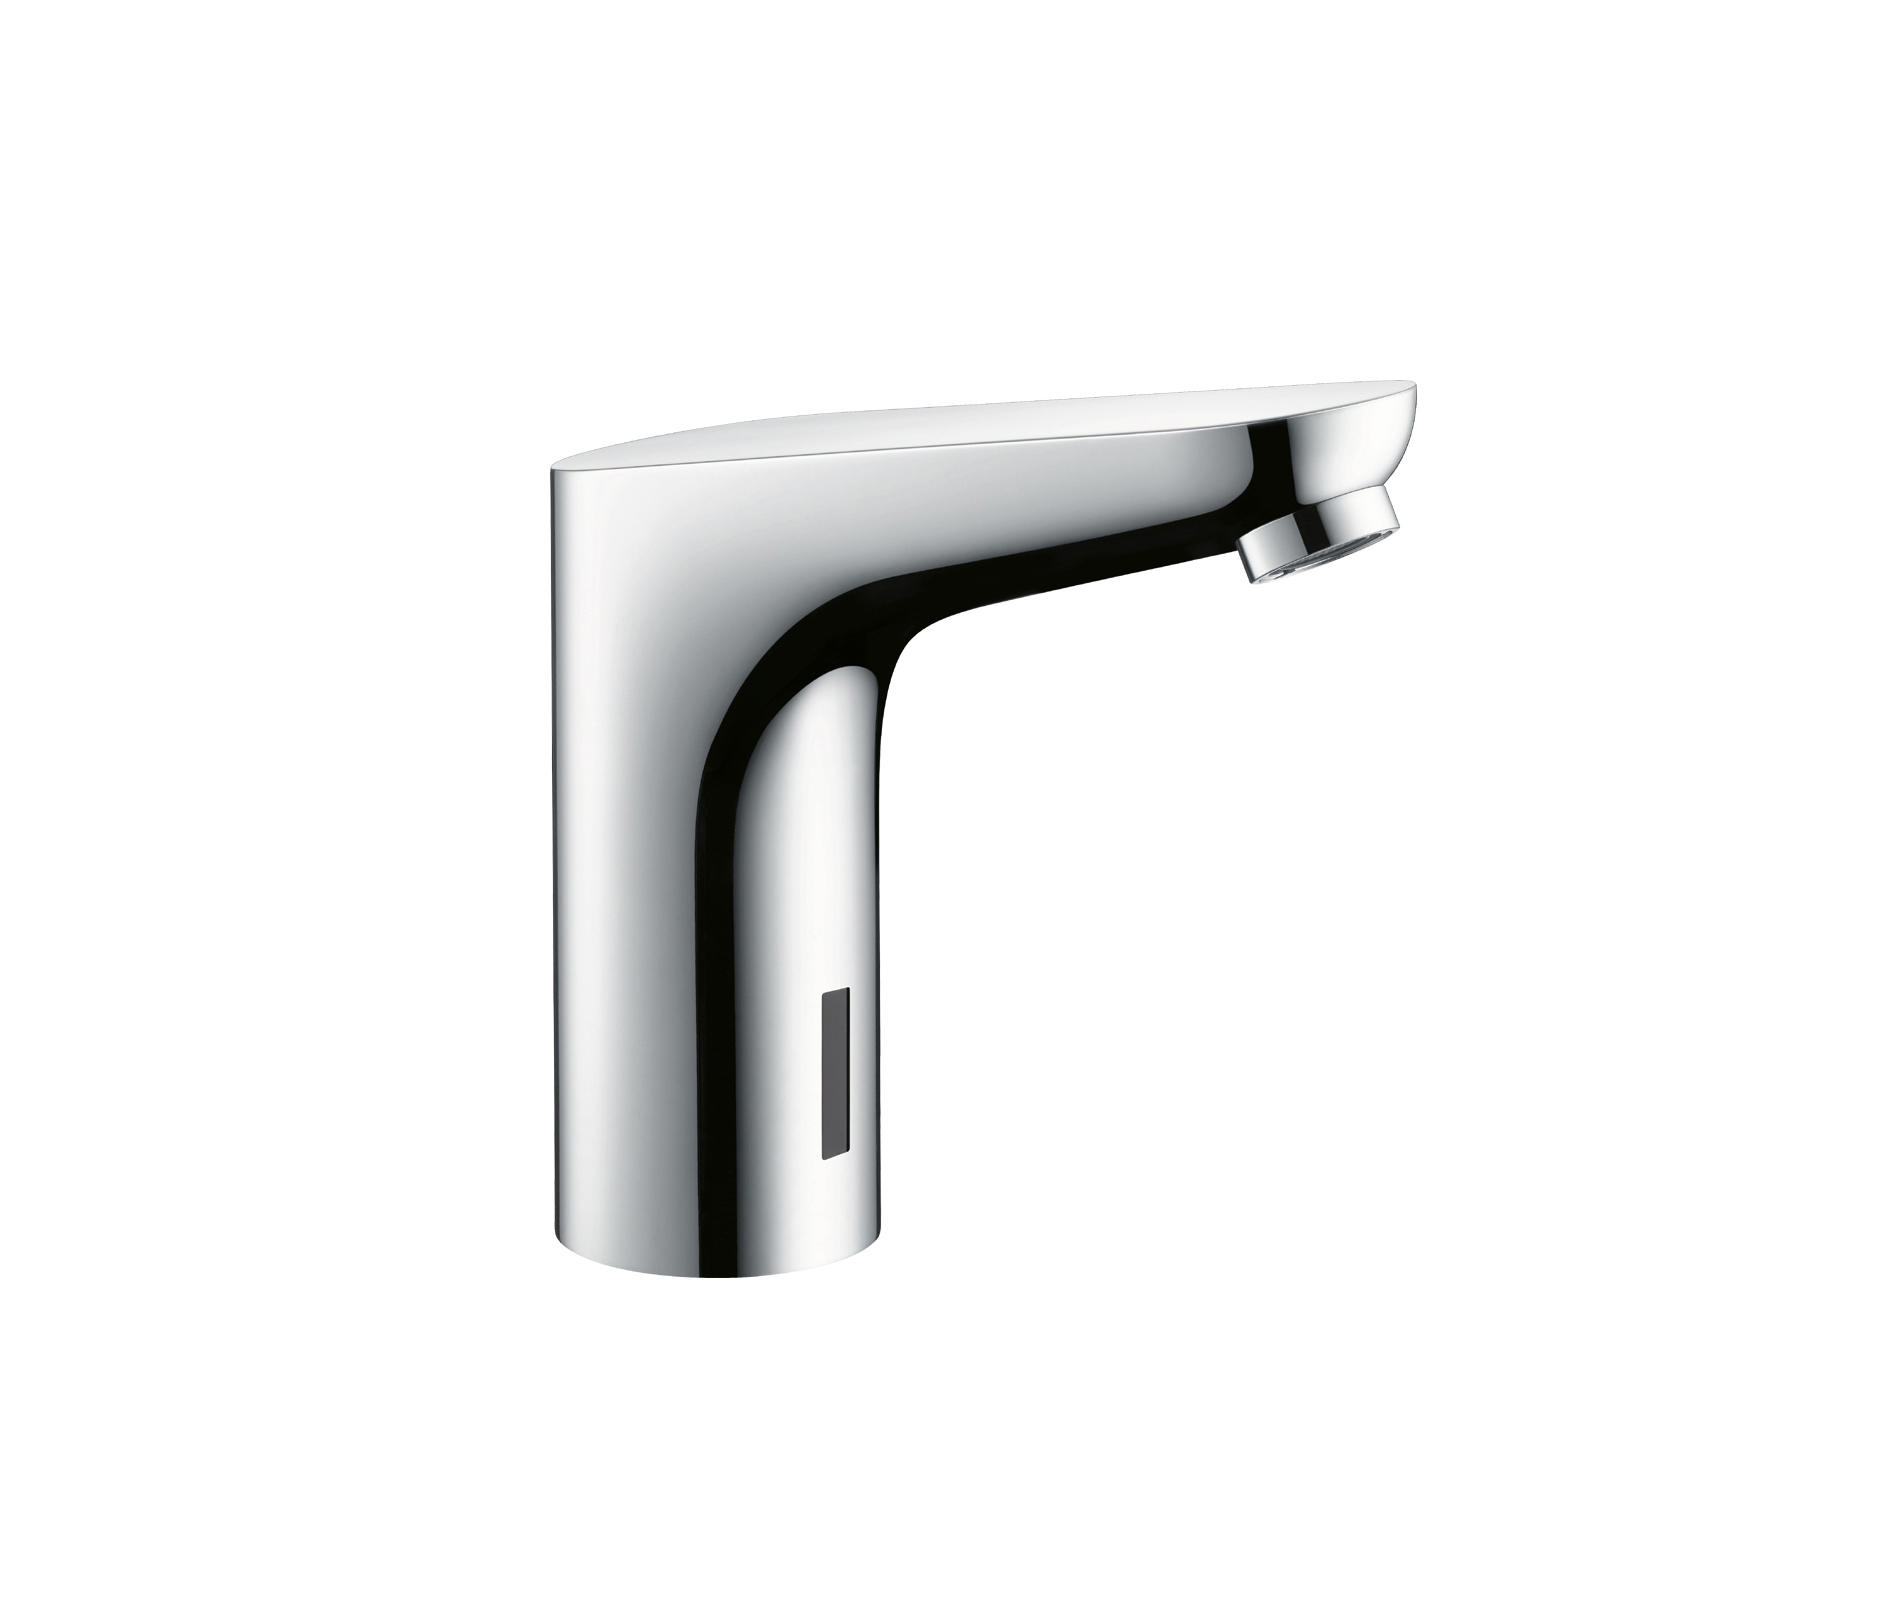 hansgrohe focus electronic basin mixer dn15 battery operated wash basin taps from hansgrohe. Black Bedroom Furniture Sets. Home Design Ideas